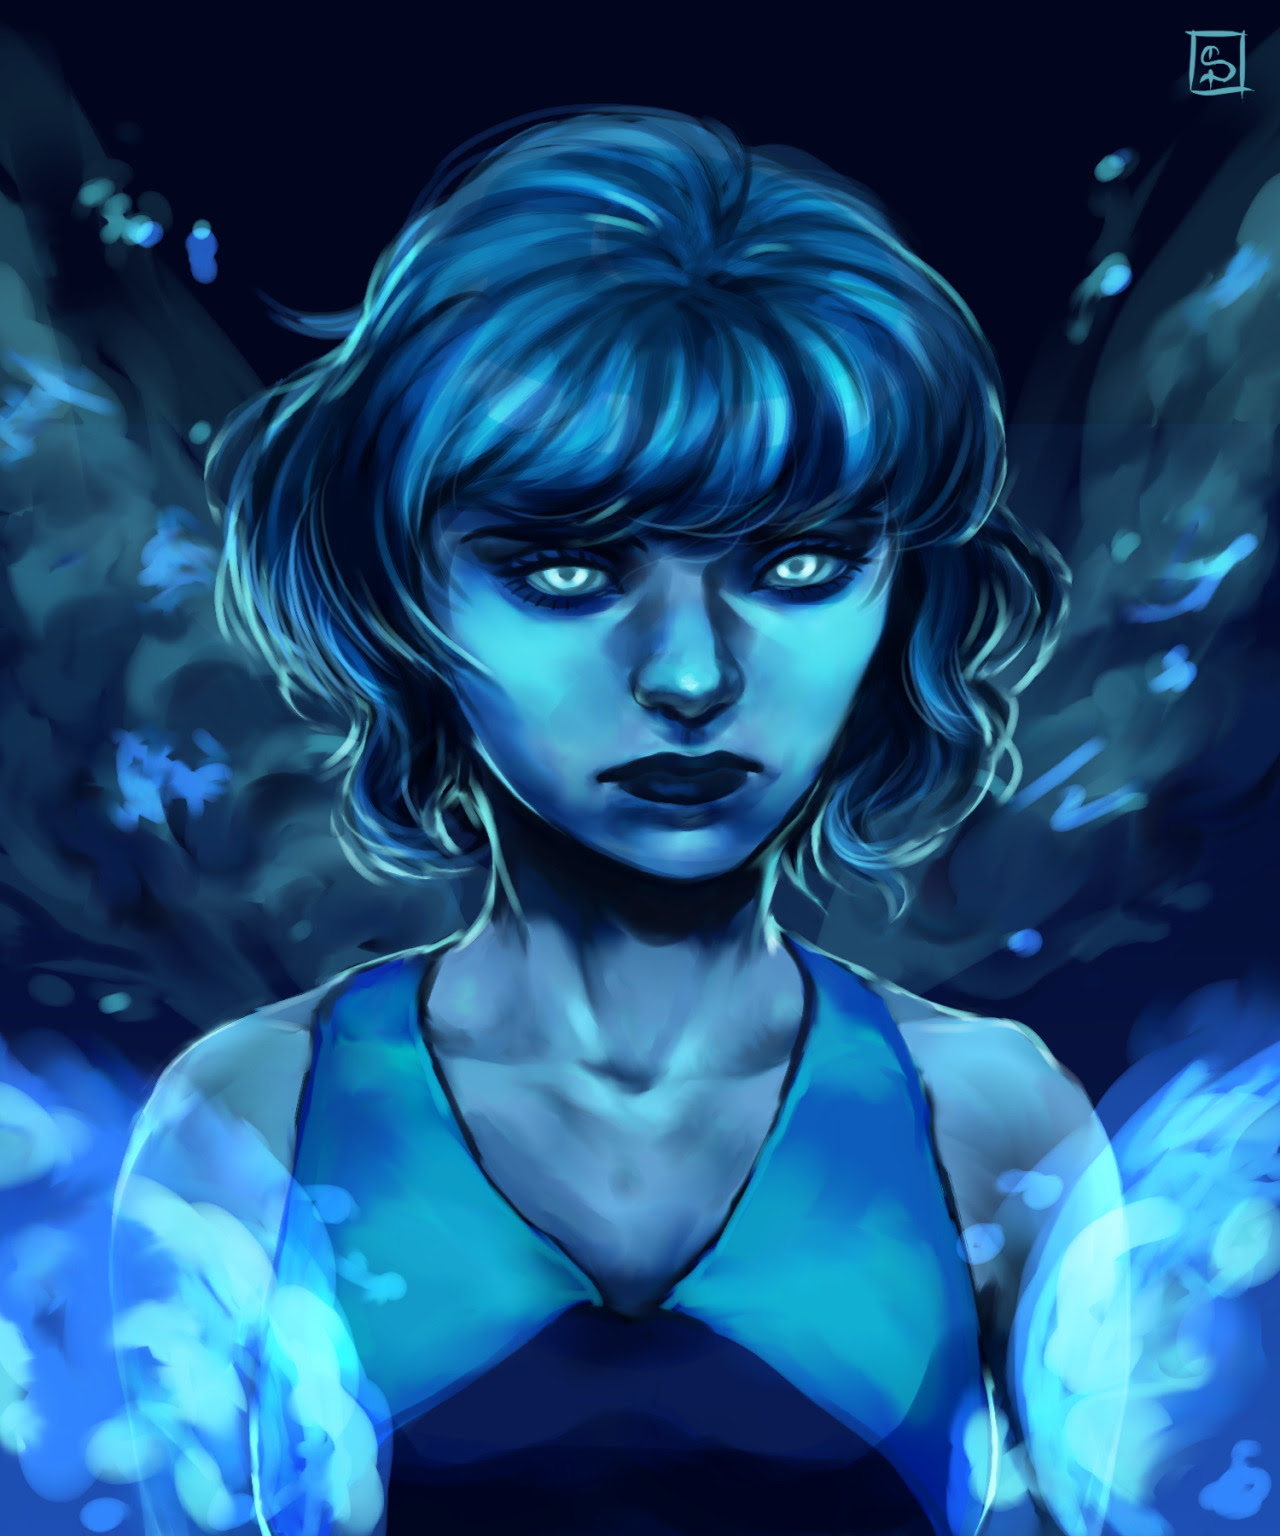 She wasn't supposed to look this ominous, but it was too late to change it. I like drawing her hair a lot but I dislike drawing water. I guess that's enough drawing for the day.